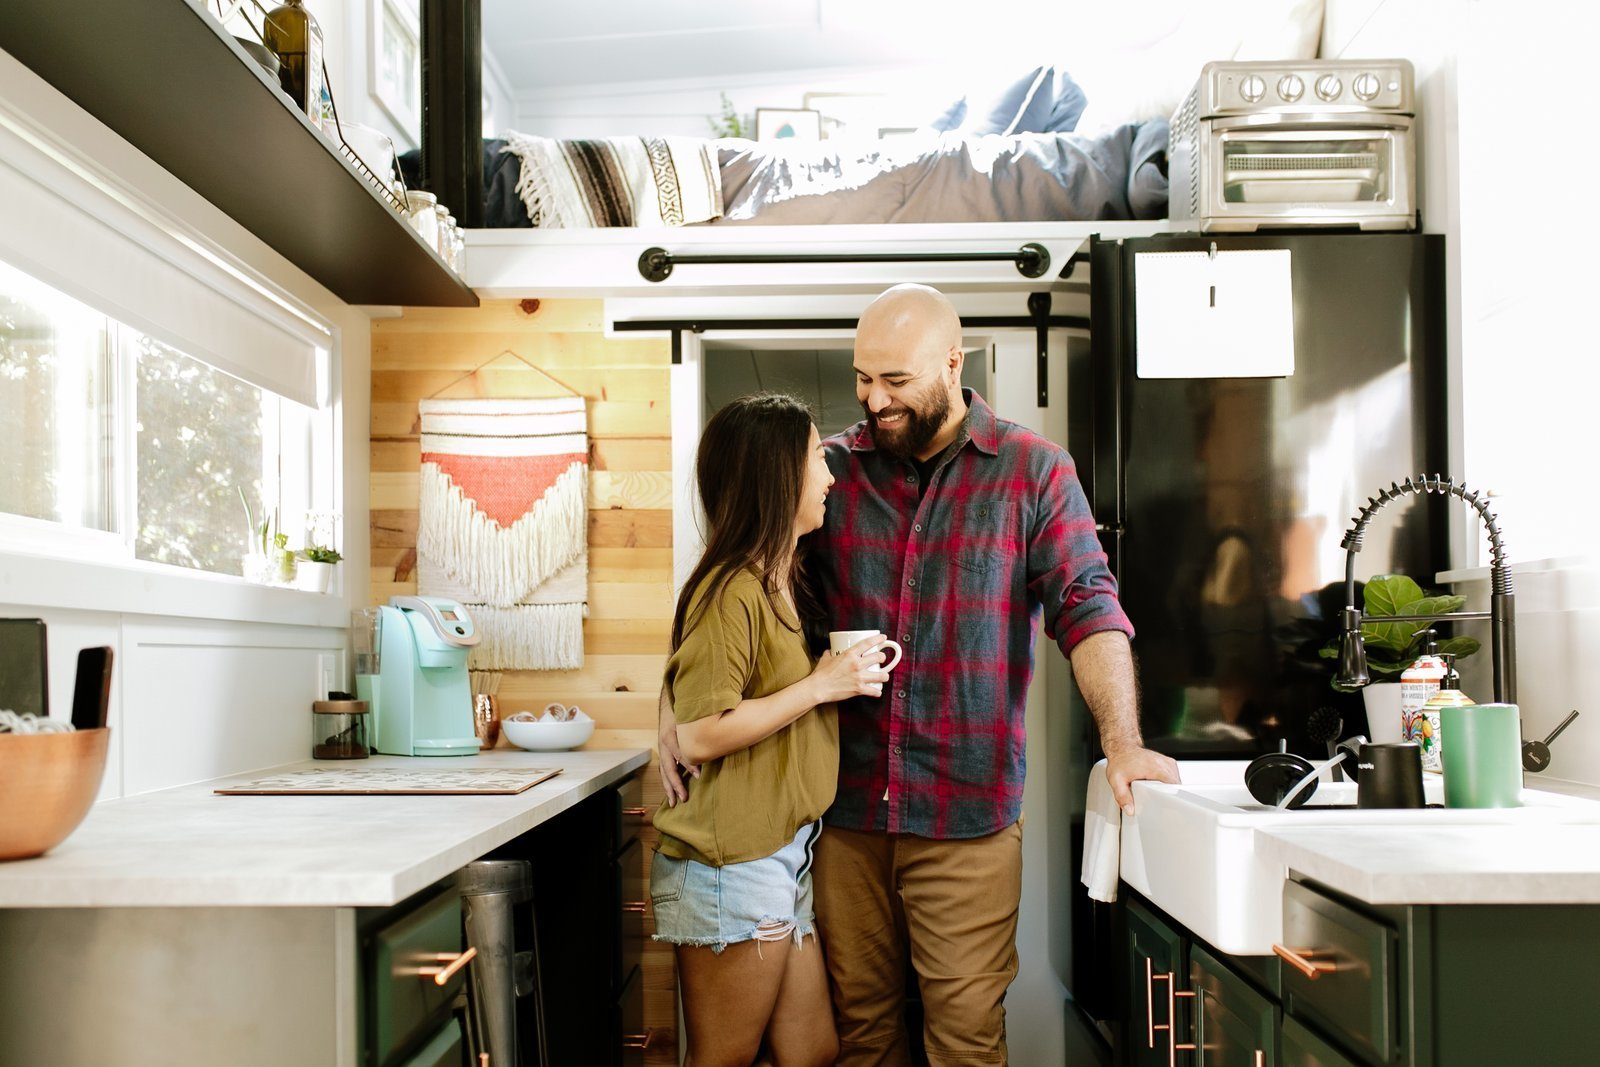 Saul and Trysh Martinez stand in the kitchen of the 250-square-foot home they built for themselves to escape mortgage and rent payments on top of their student loans.  Photo 1 of 13 in Budget Breakdown: Two Travel Therapists Build a Tiny Home-on-Wheels for $24K